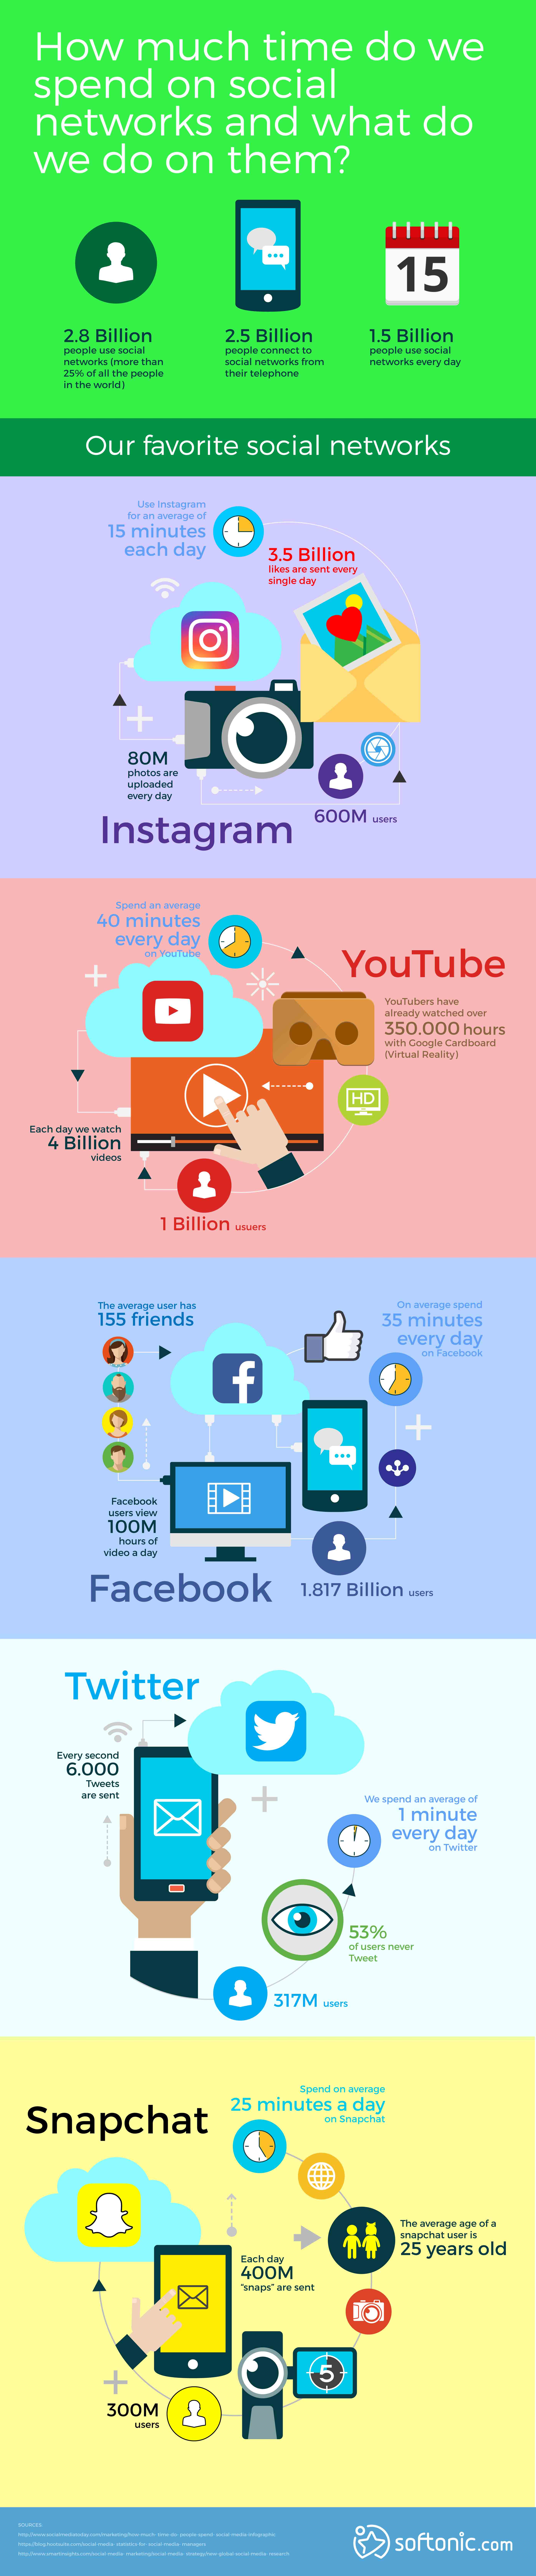 How much time do we spend on social media